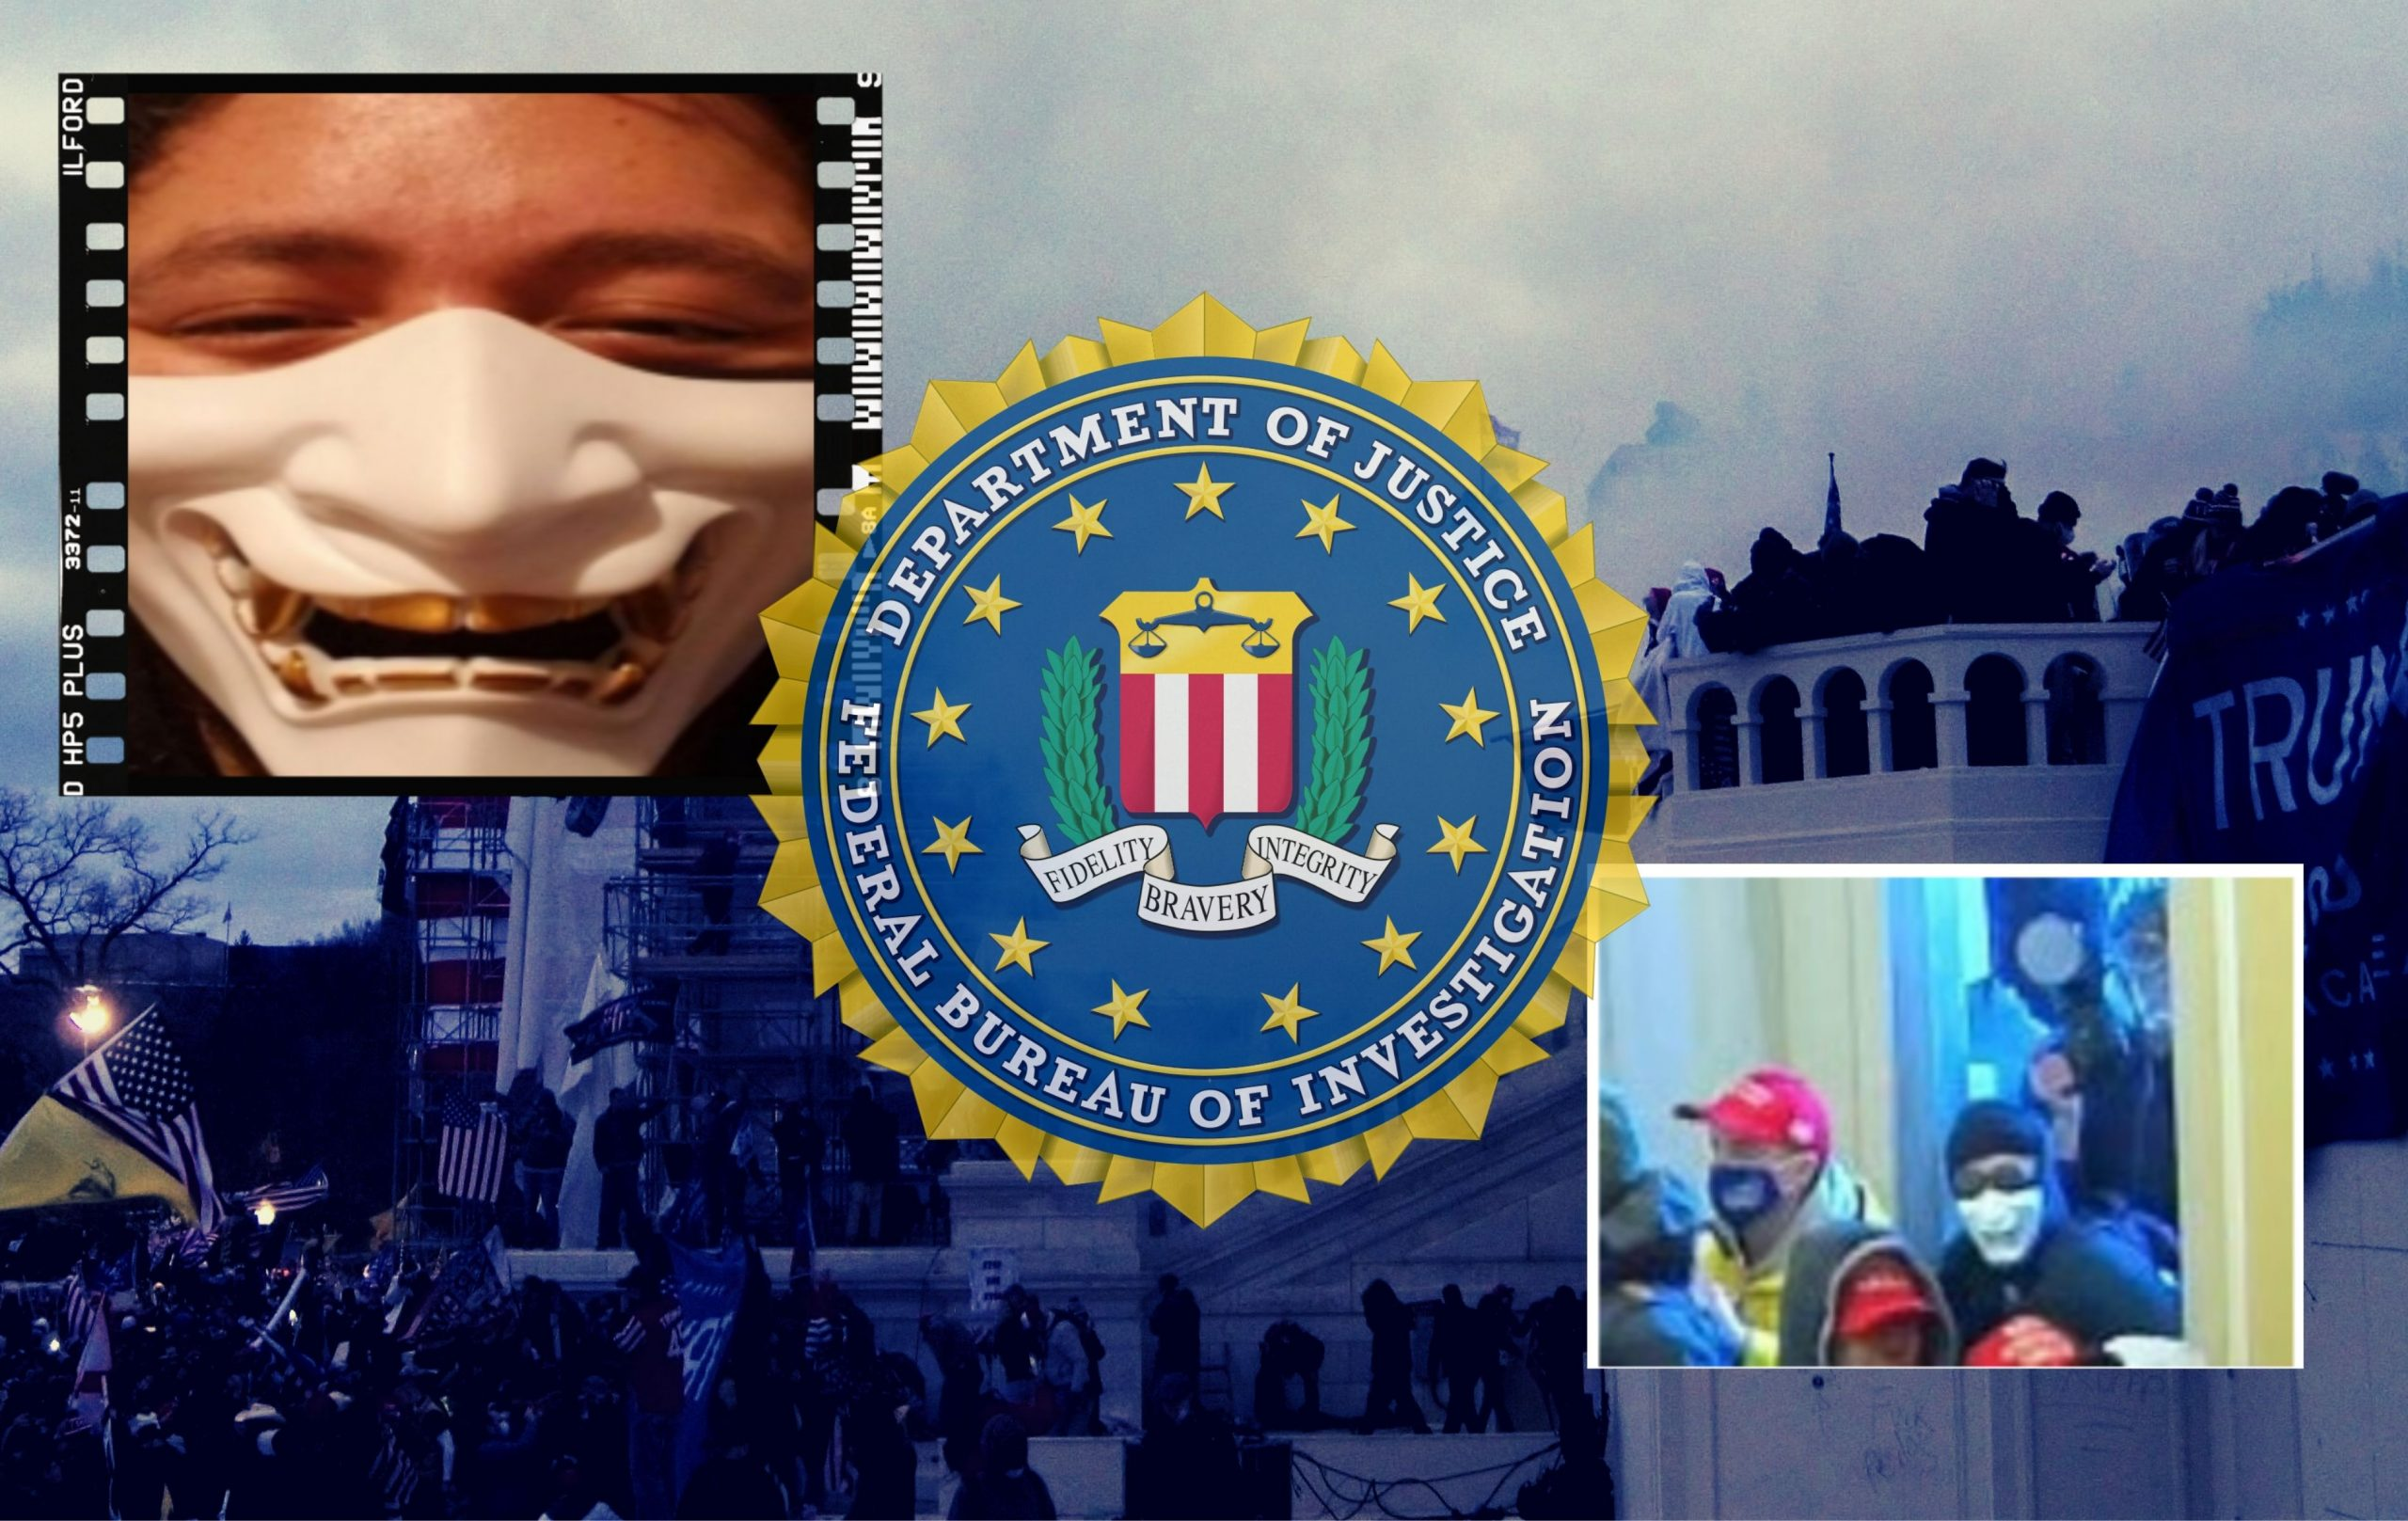 Breaking! PSB, Revolver News Vindicated: Court Docs Prove FBI & MPD Placed Undercovers on January 6 at Capitol